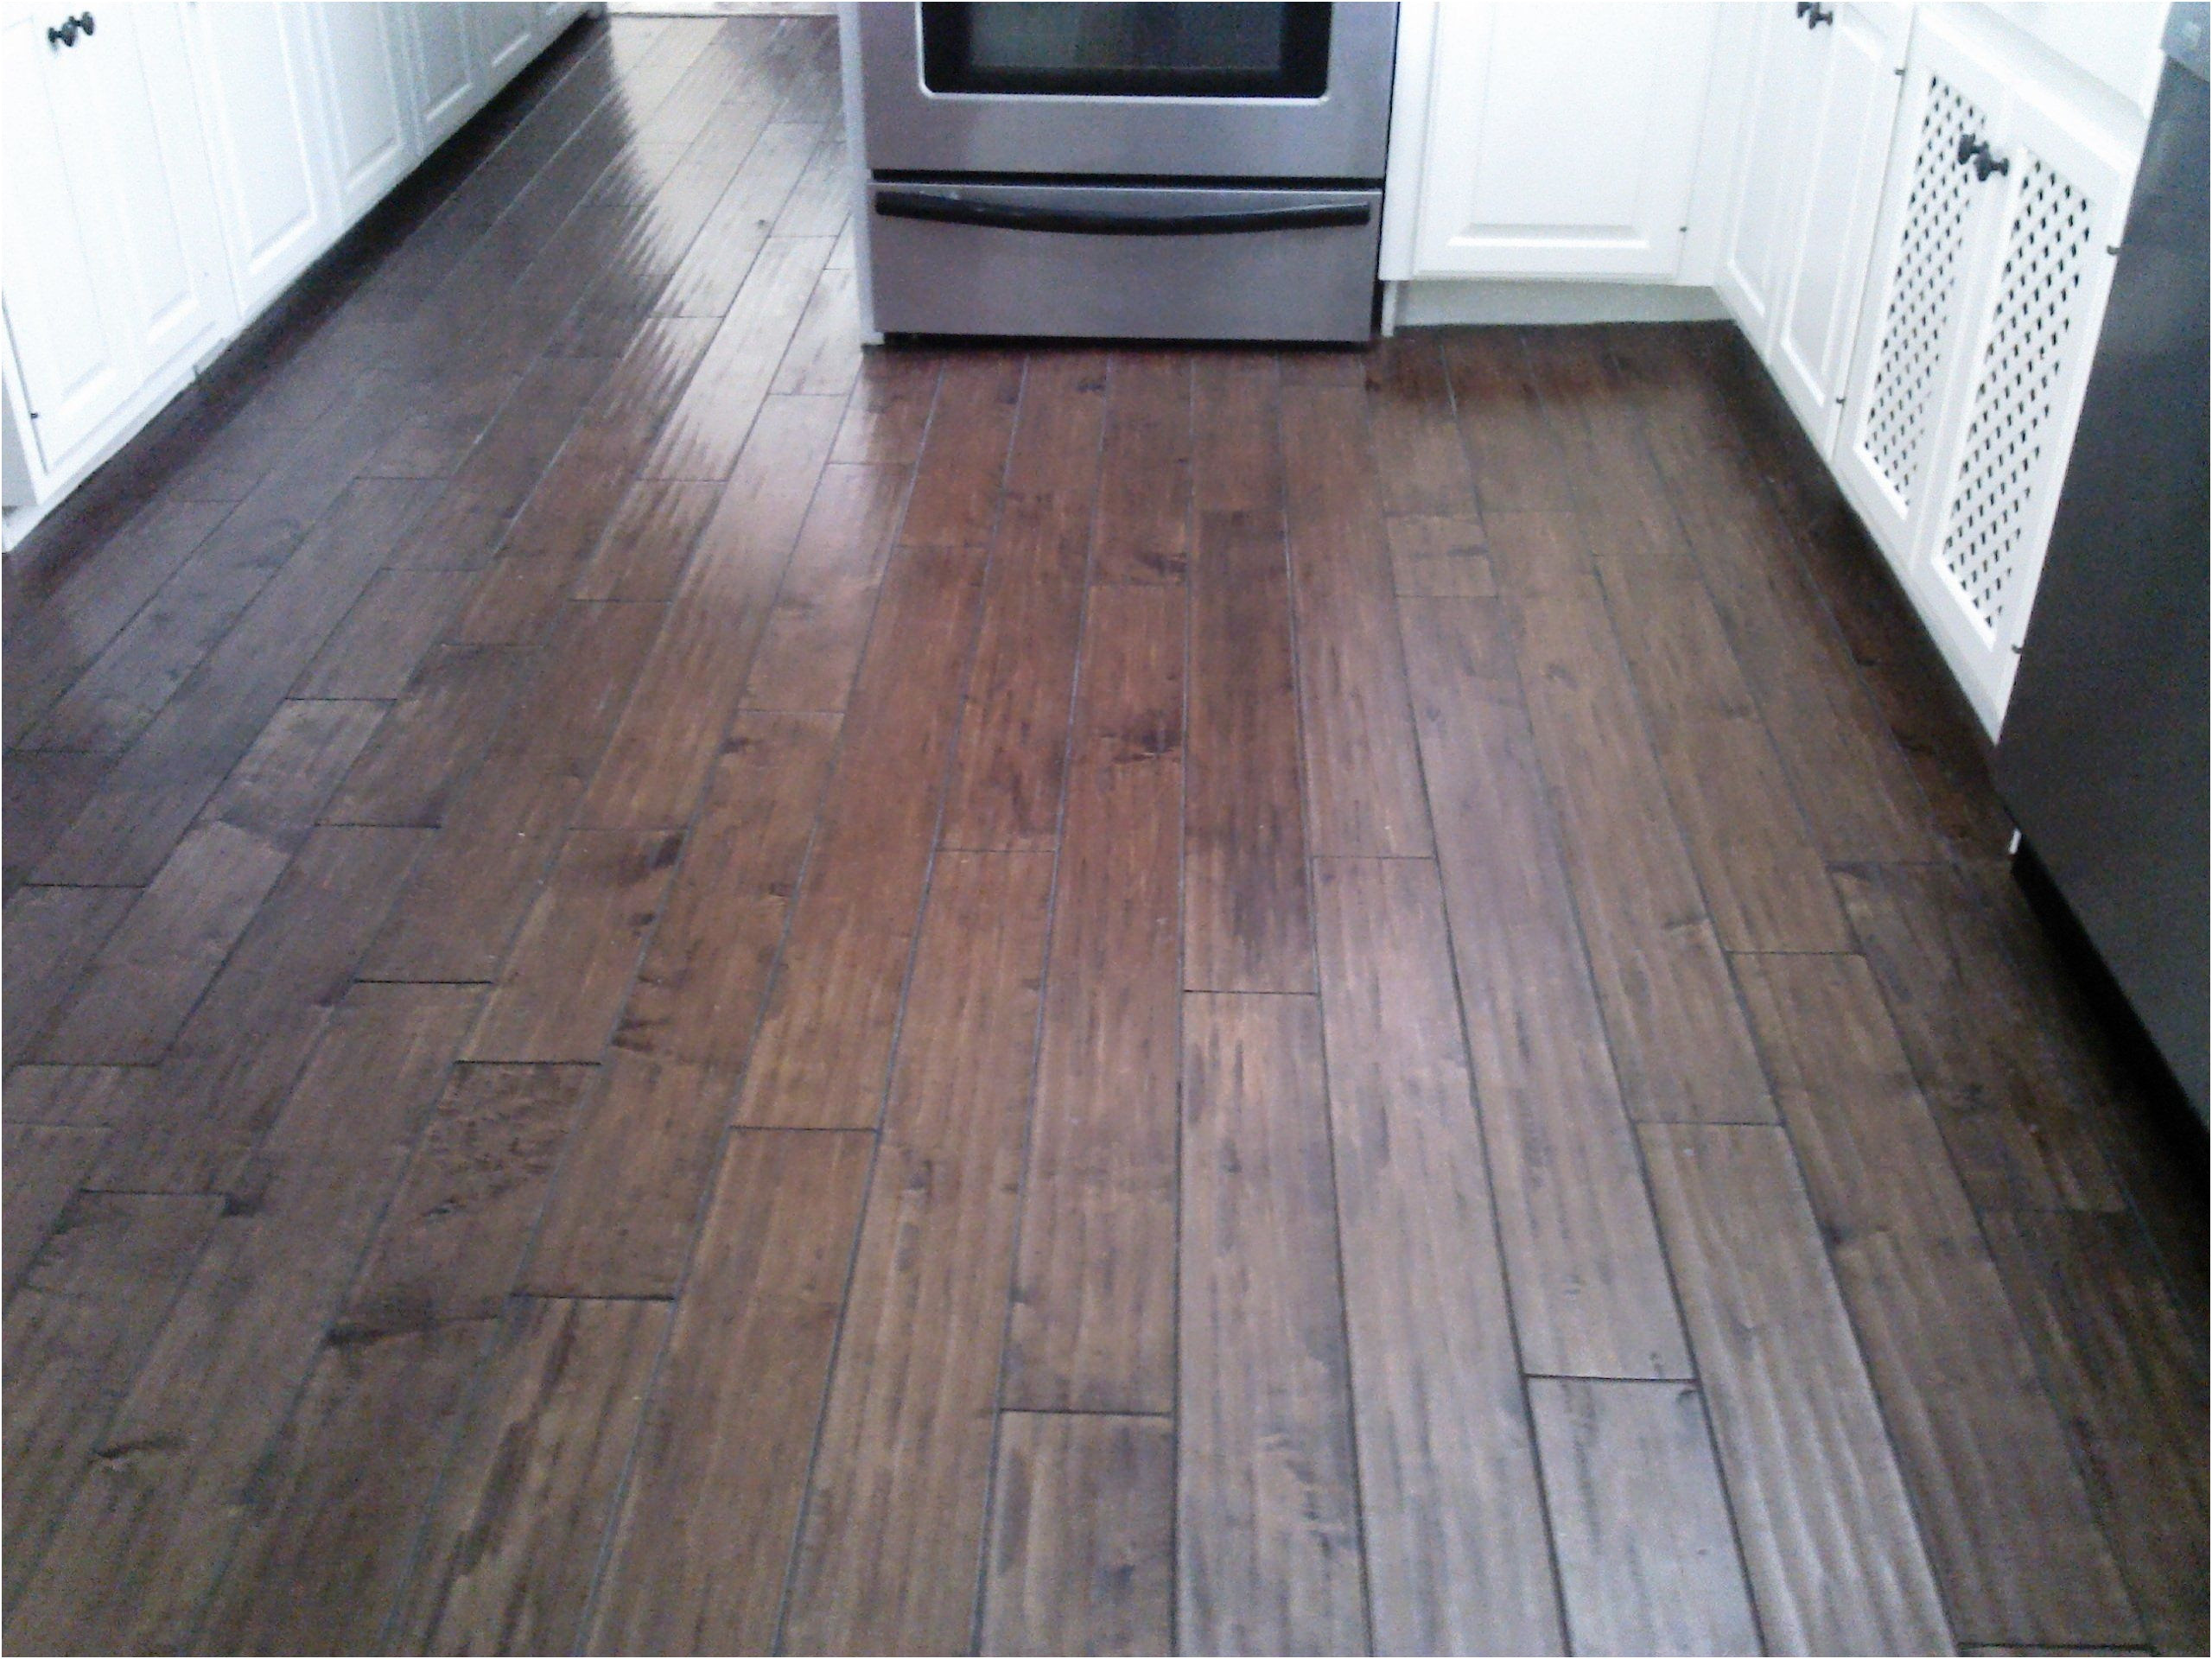 Mohawk Hardwood Floor Cleaner Reviews Of Luxury Vinyl Flooring Vs Laminate Stock Luxury Vinyl Wood Flooring Pertaining to Luxury Vinyl Flooring Vs Laminate Stock Luxury Vinyl Wood Flooring Reviews Tags 46 Outstanding Wood Vinyl